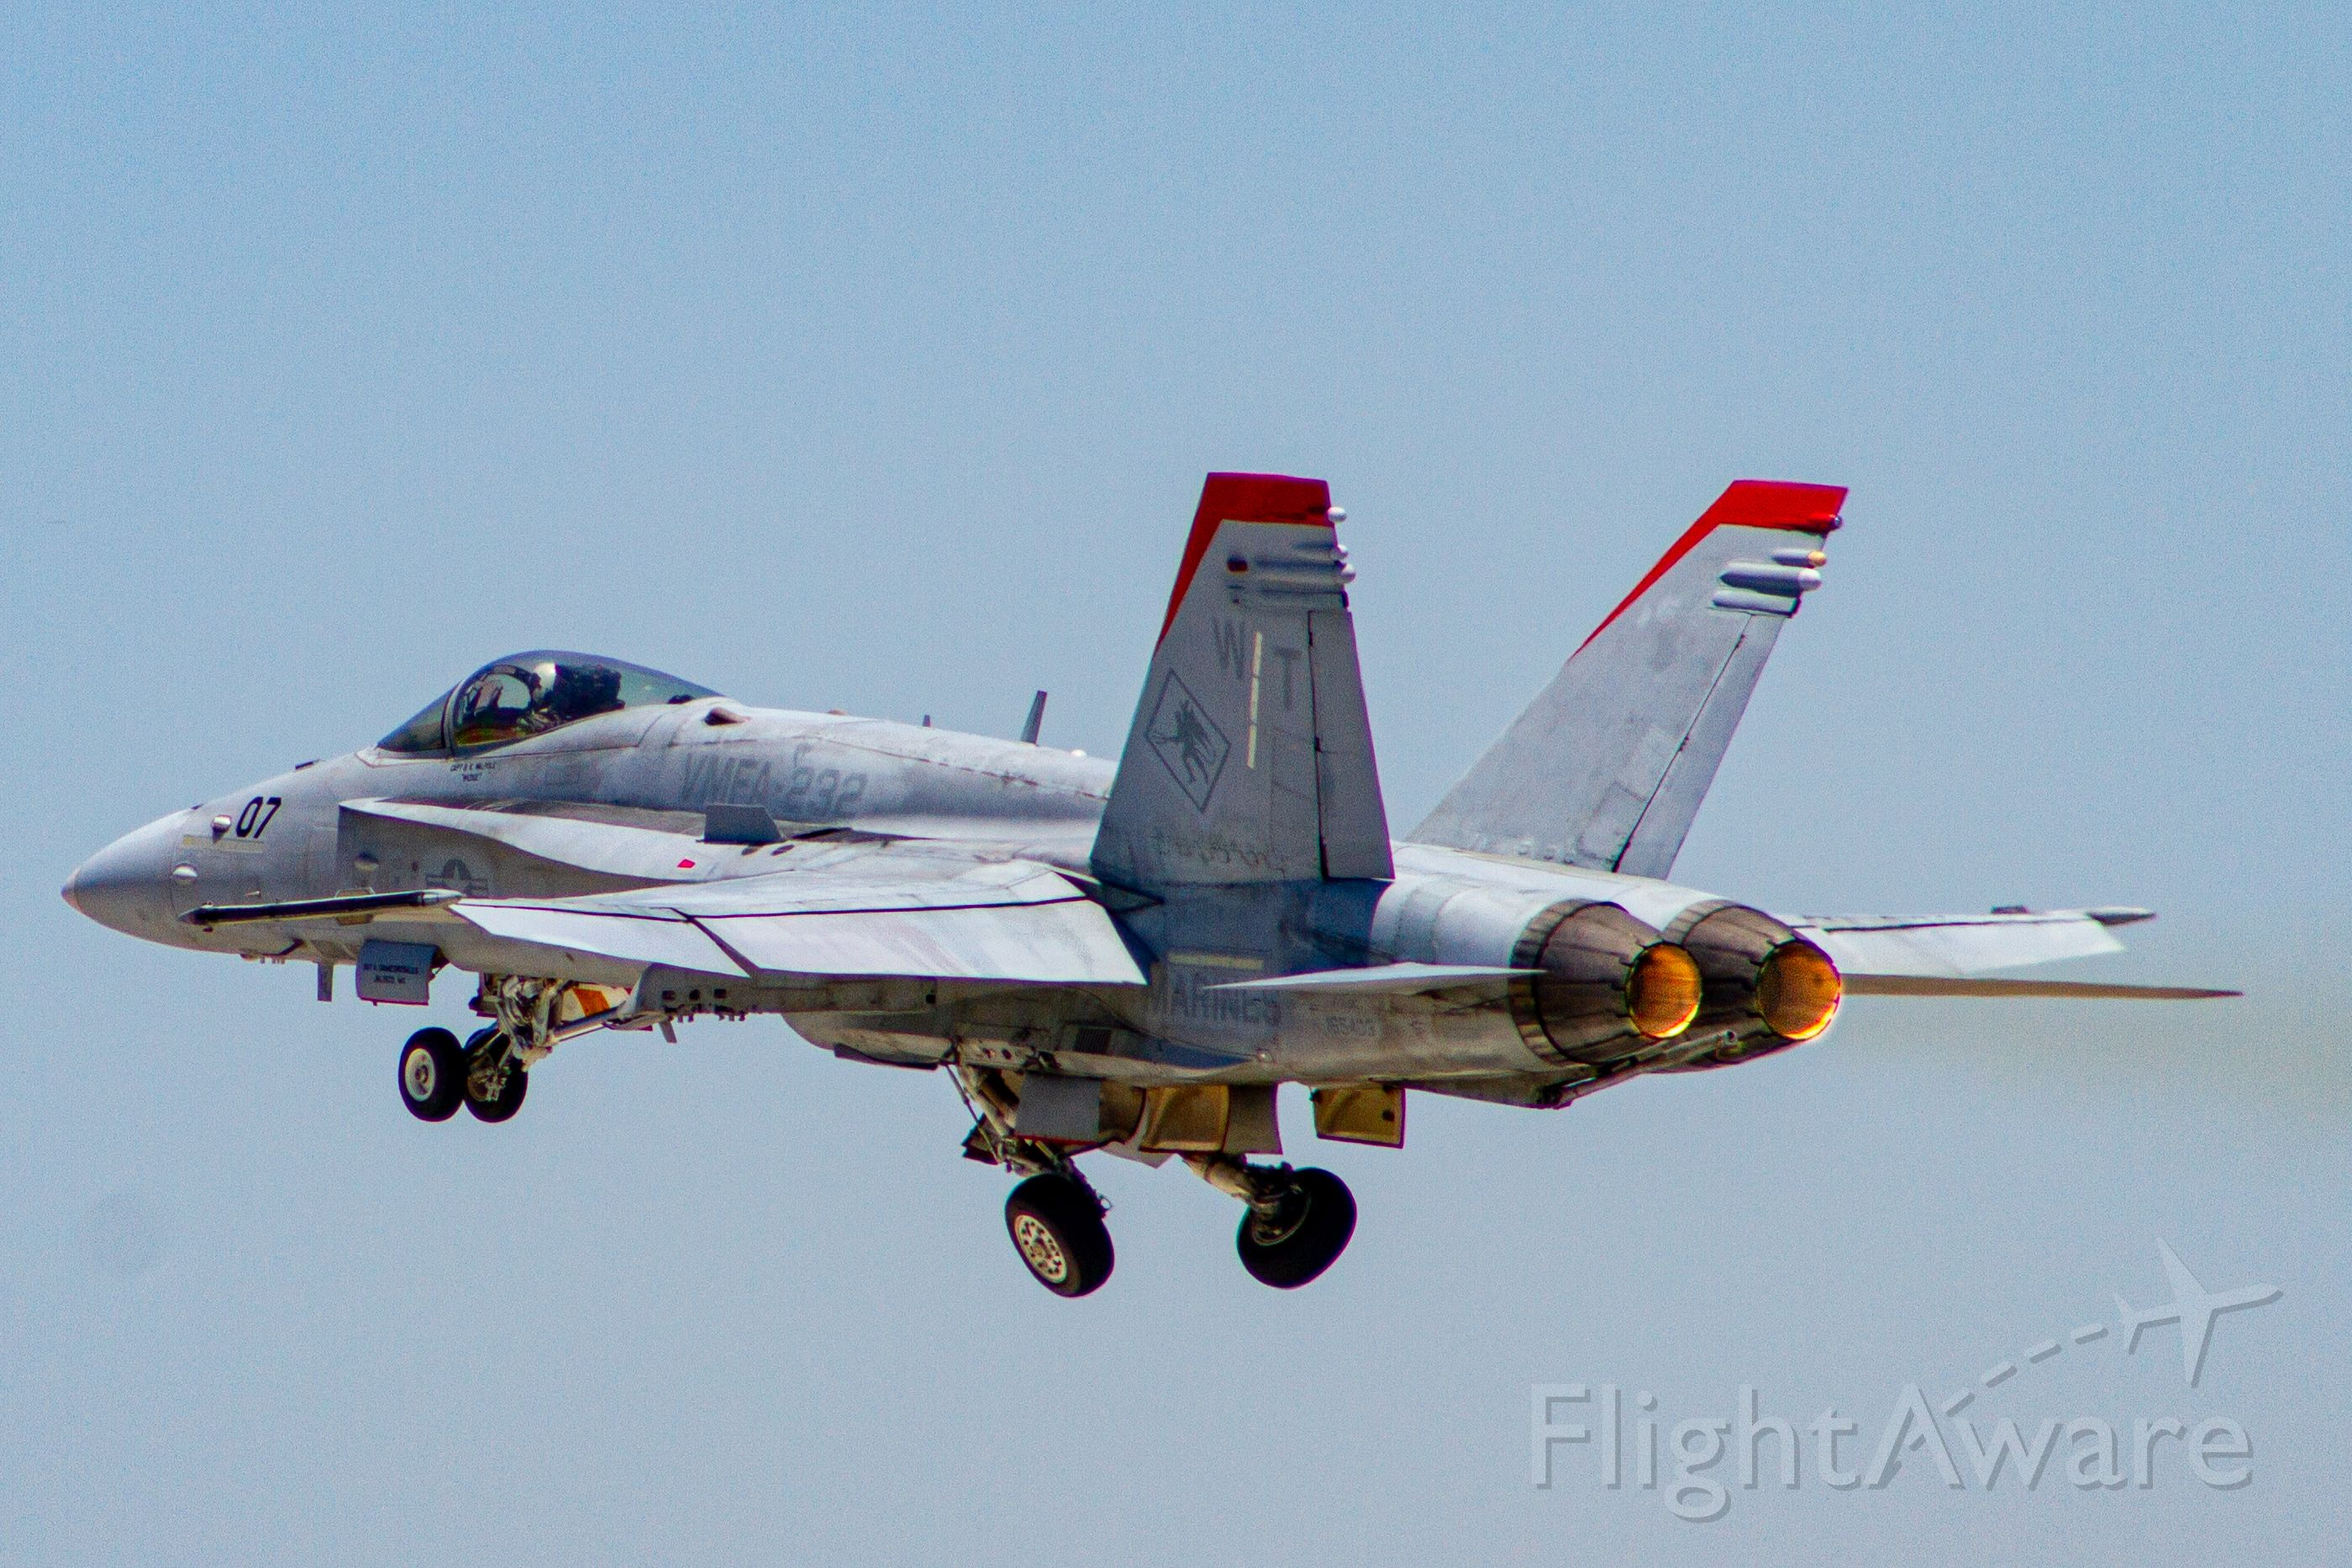 McDonnell Douglas FA-18 Hornet (16-5403) - This is one of two F18s visiting KLGB on 7/11/2020